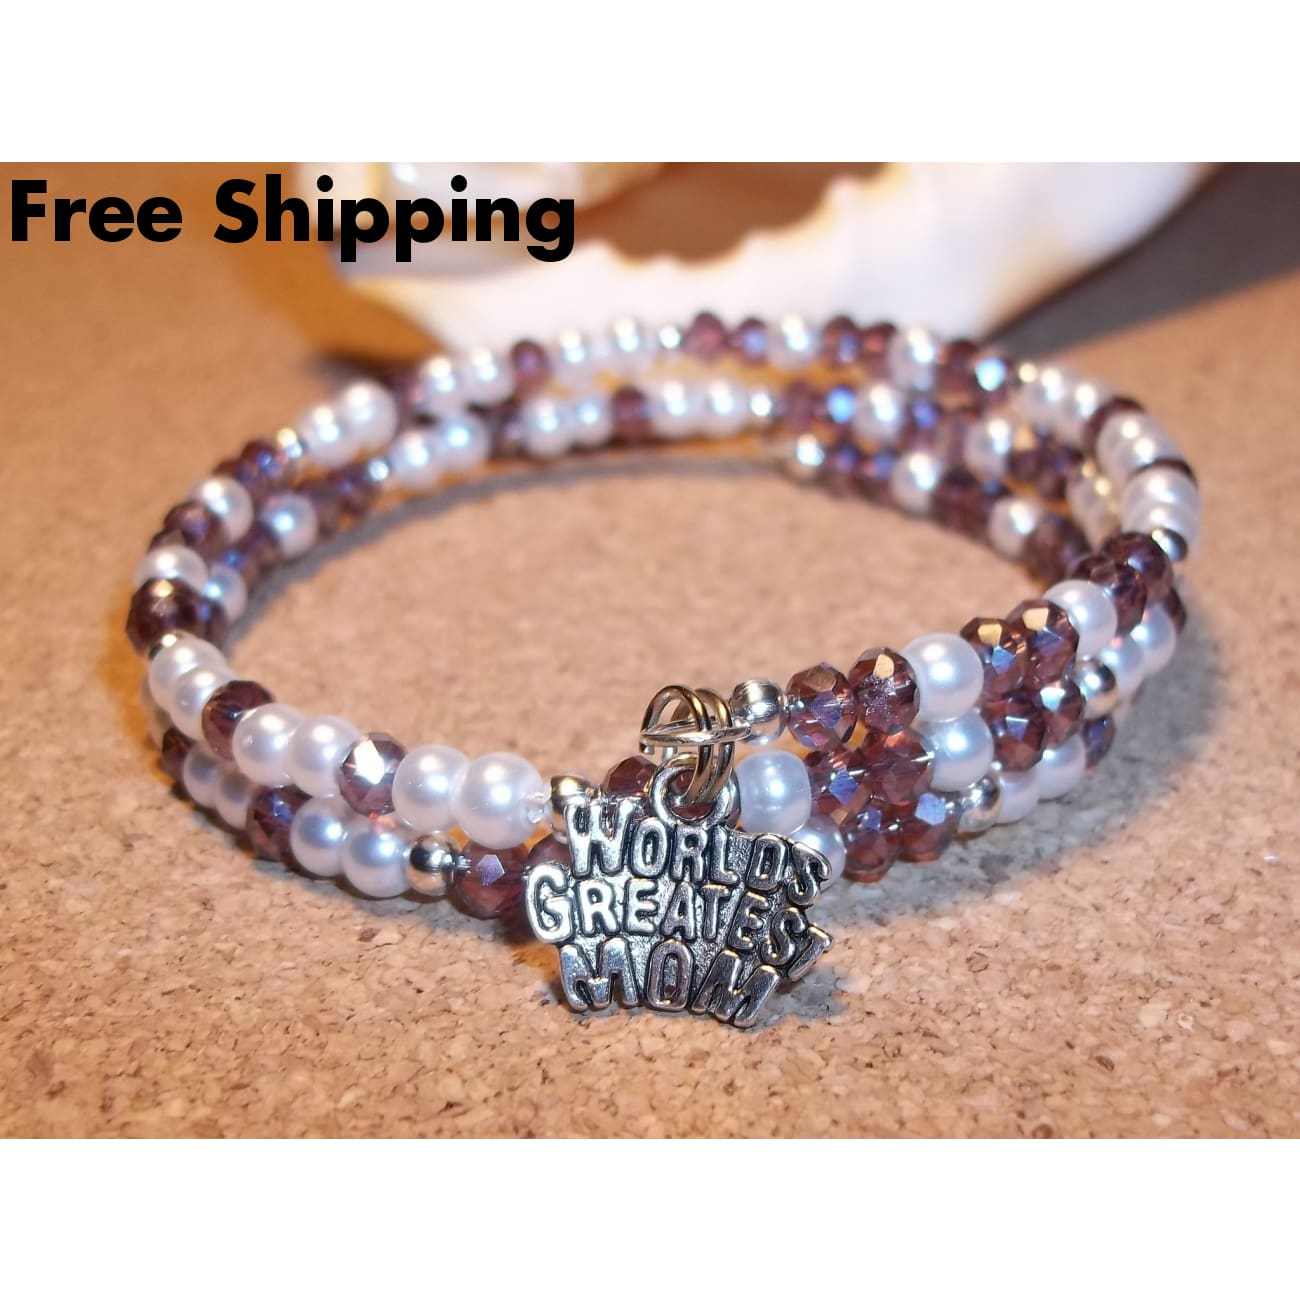 Worlds Greatest Mom Dusty Rose Swarovski Crystal & White Pearl Beaded Hand Crafted Wrap Bracelet - Bracelets